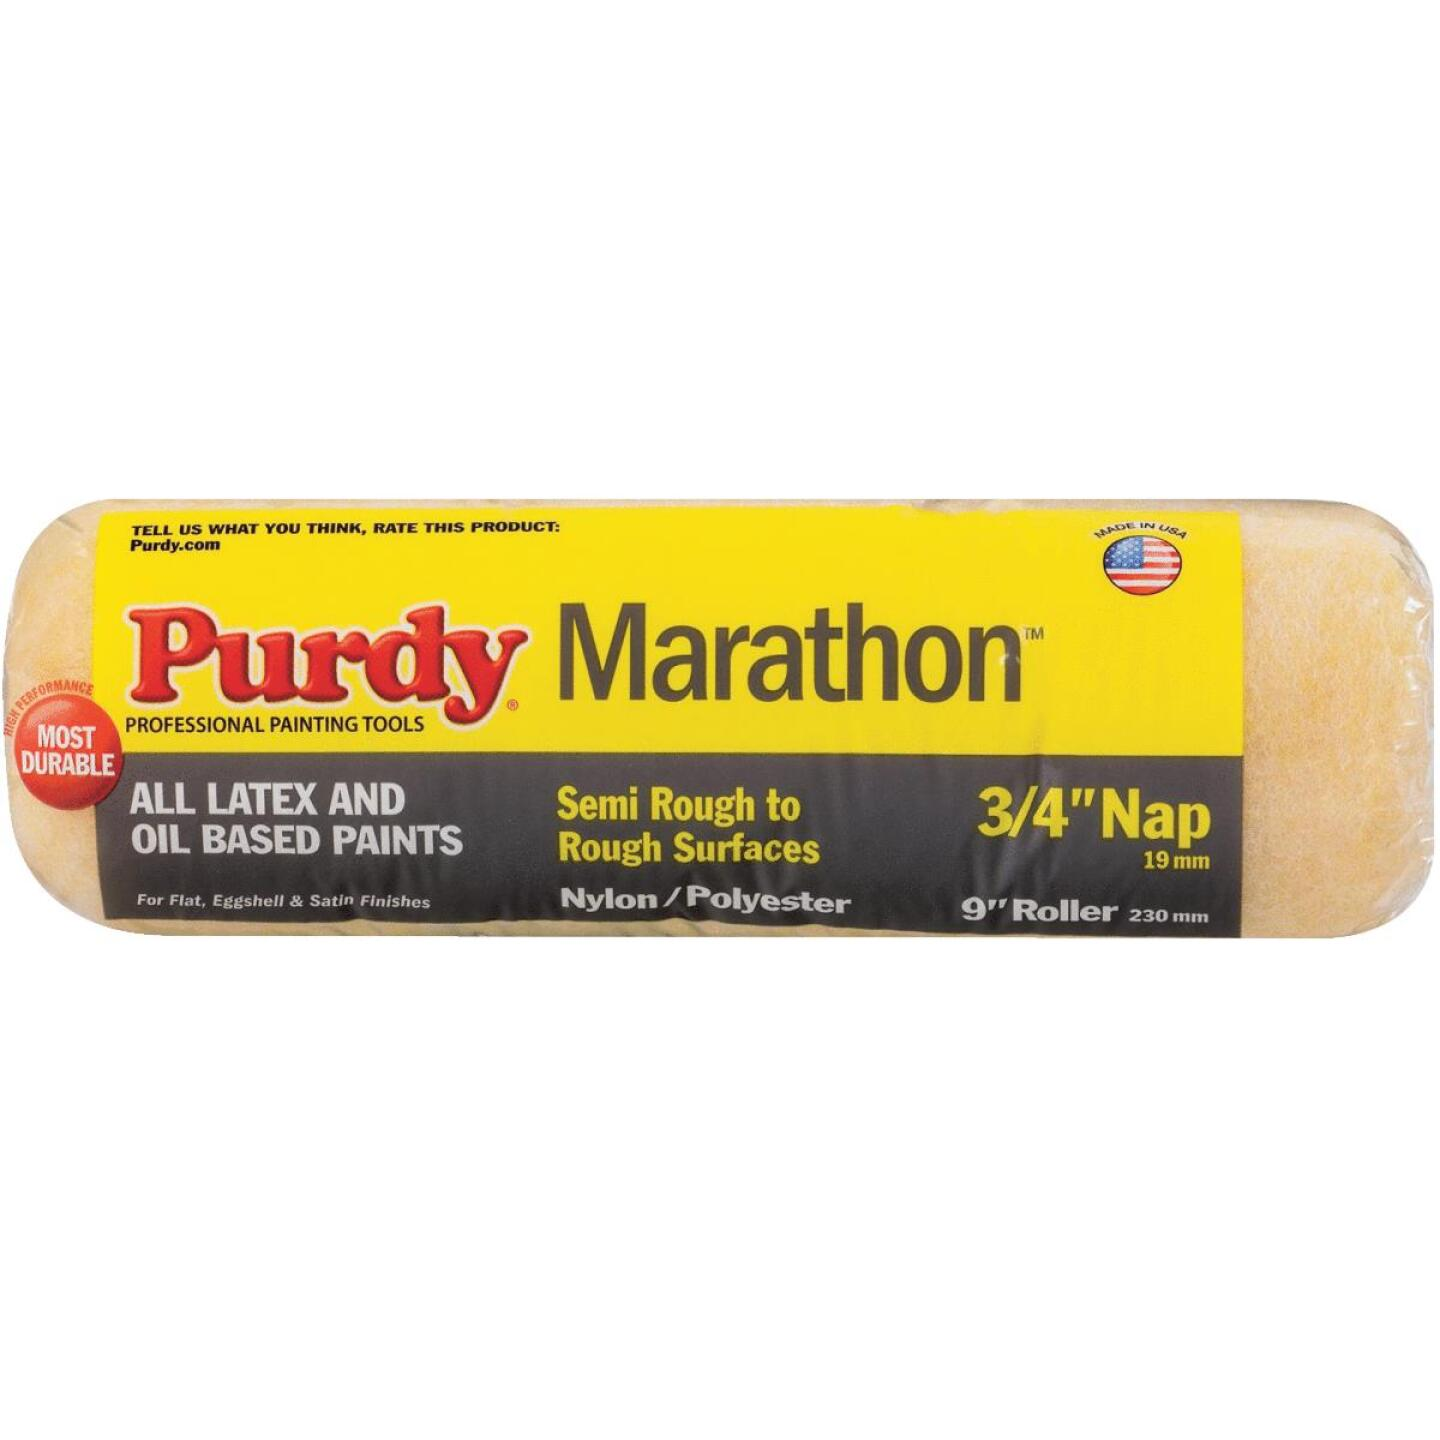 Purdy Marathon 9 In. x 3/4 In. Knit Fabric Roller Cover Image 1